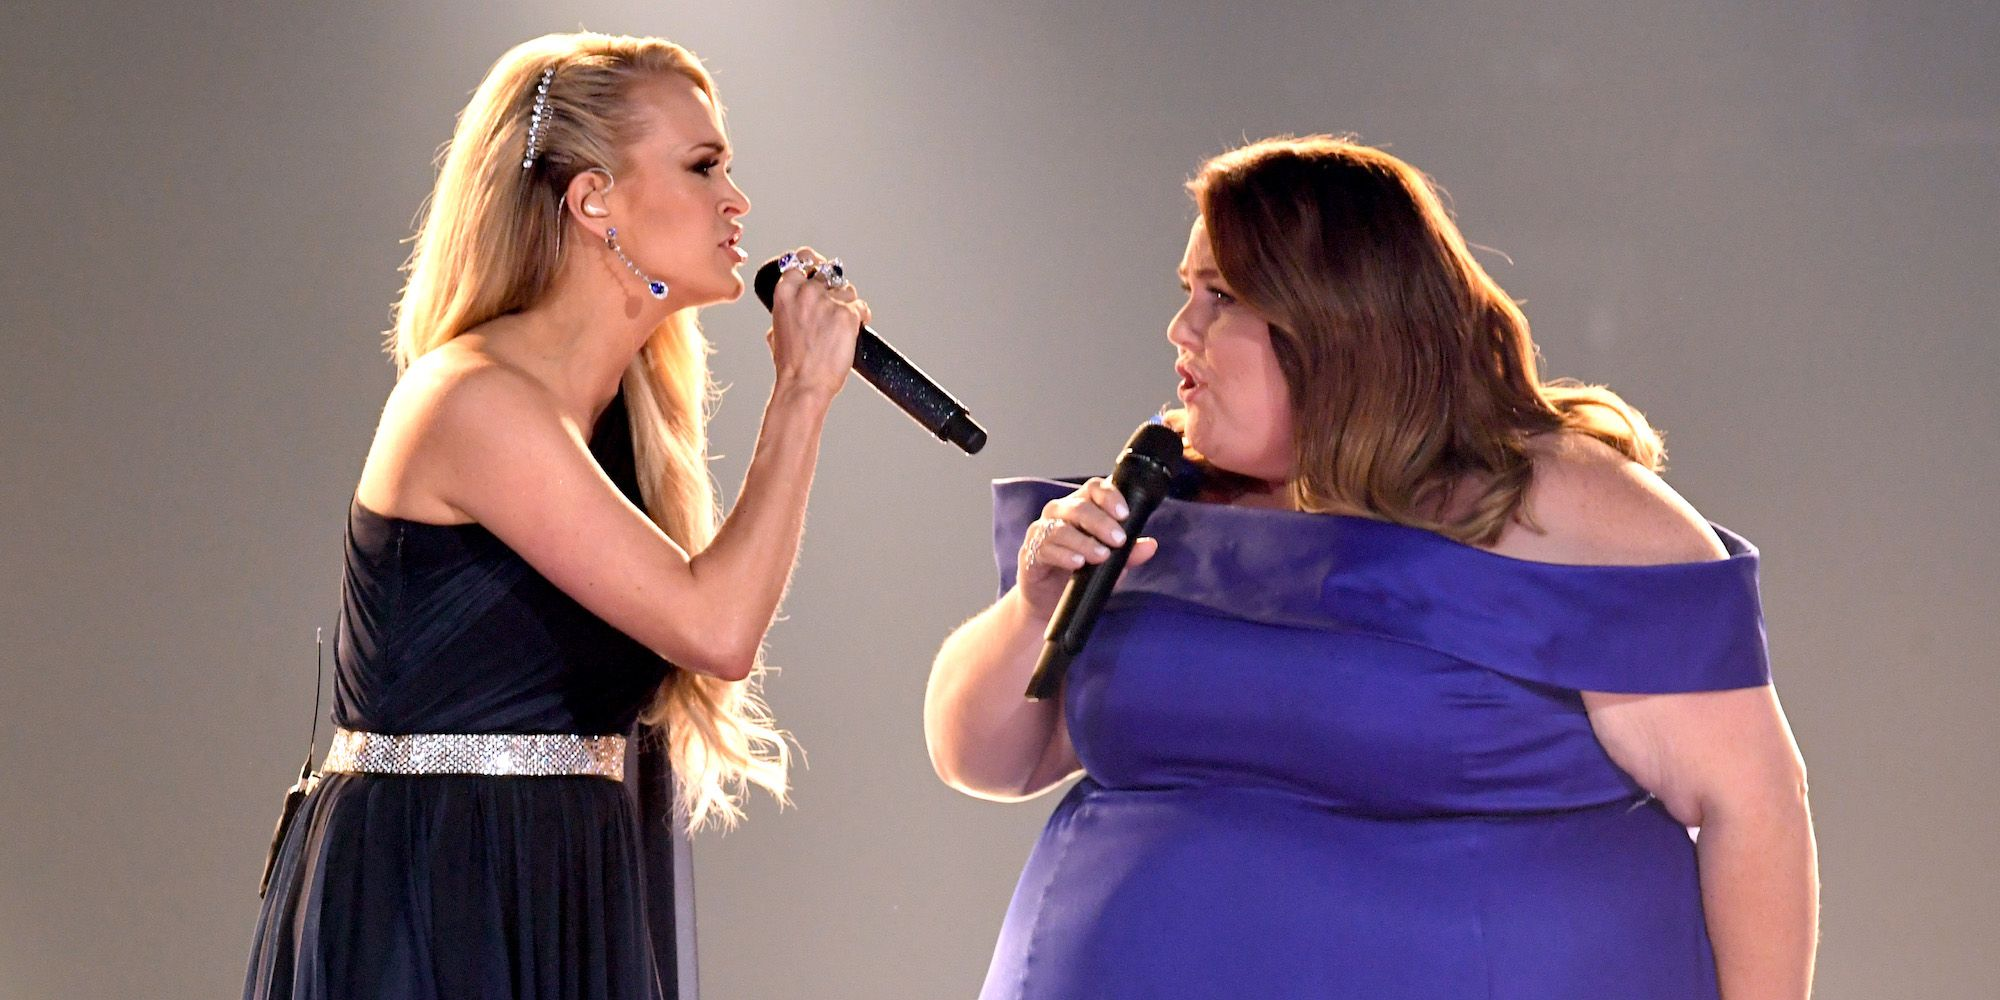 Chrissy Metz and Carrie Underwood at the ACM Awards